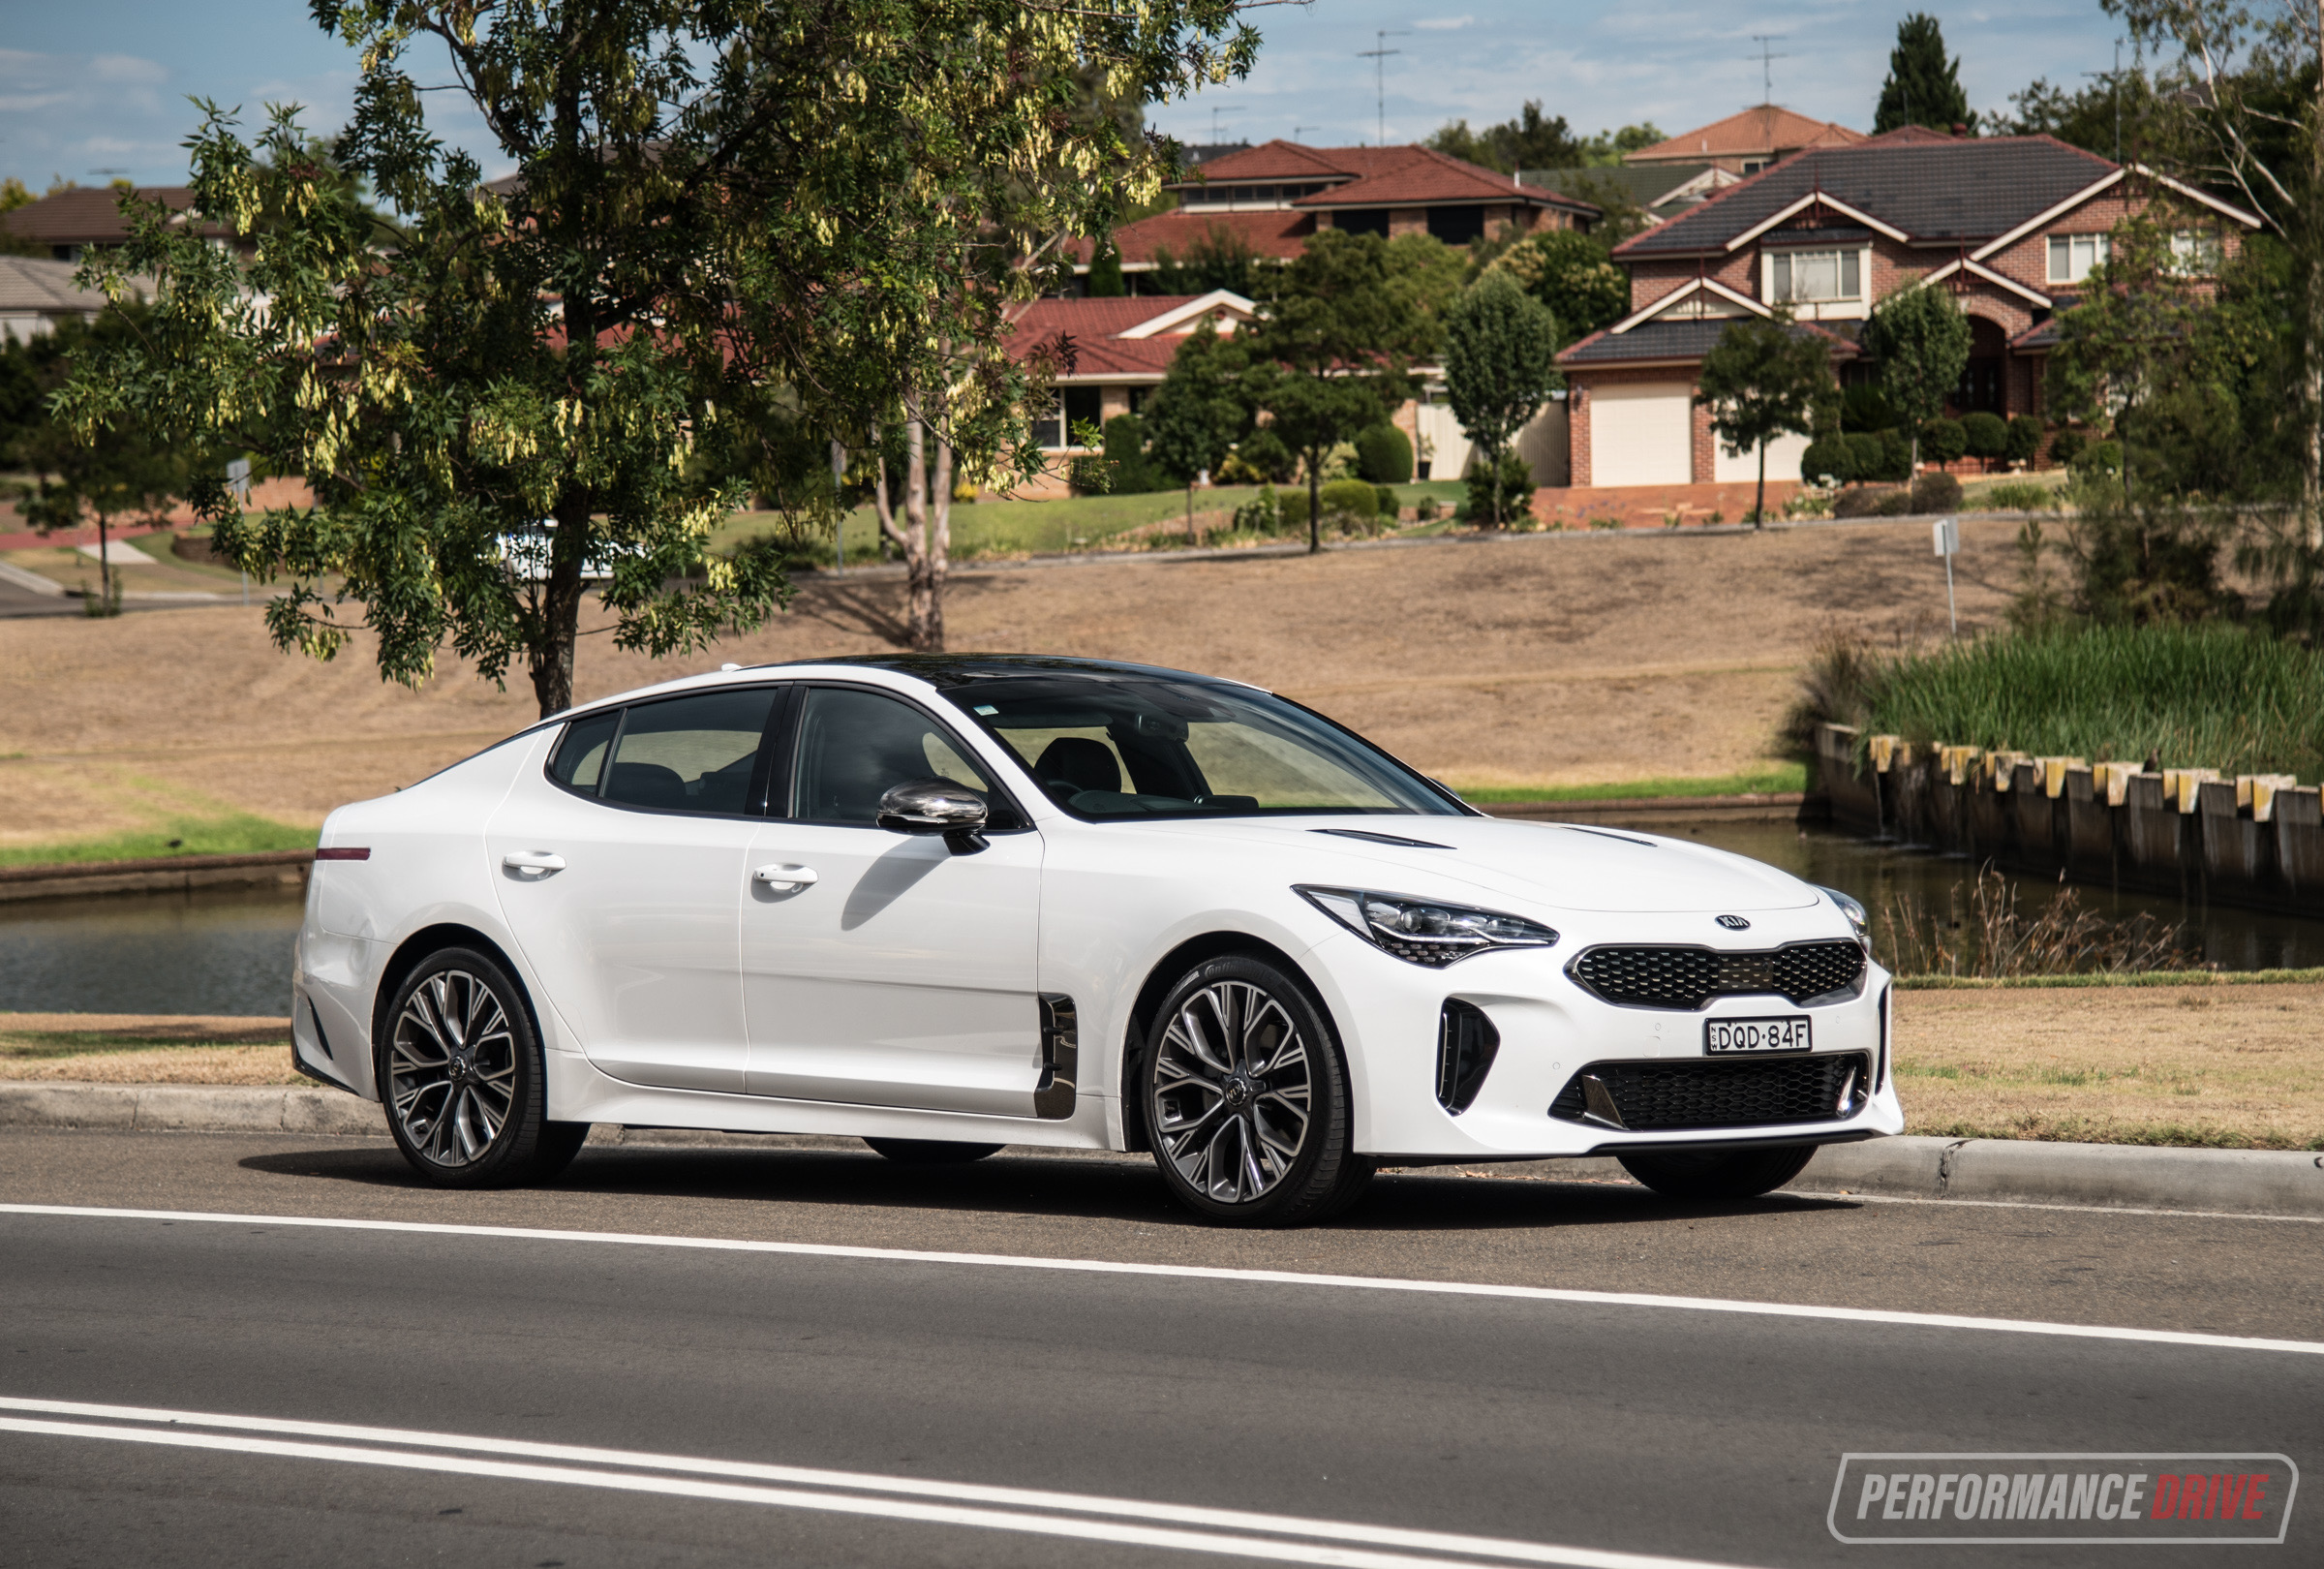 2018 Kia Stinger 200 GT-Line (video) | PerformanceDrive